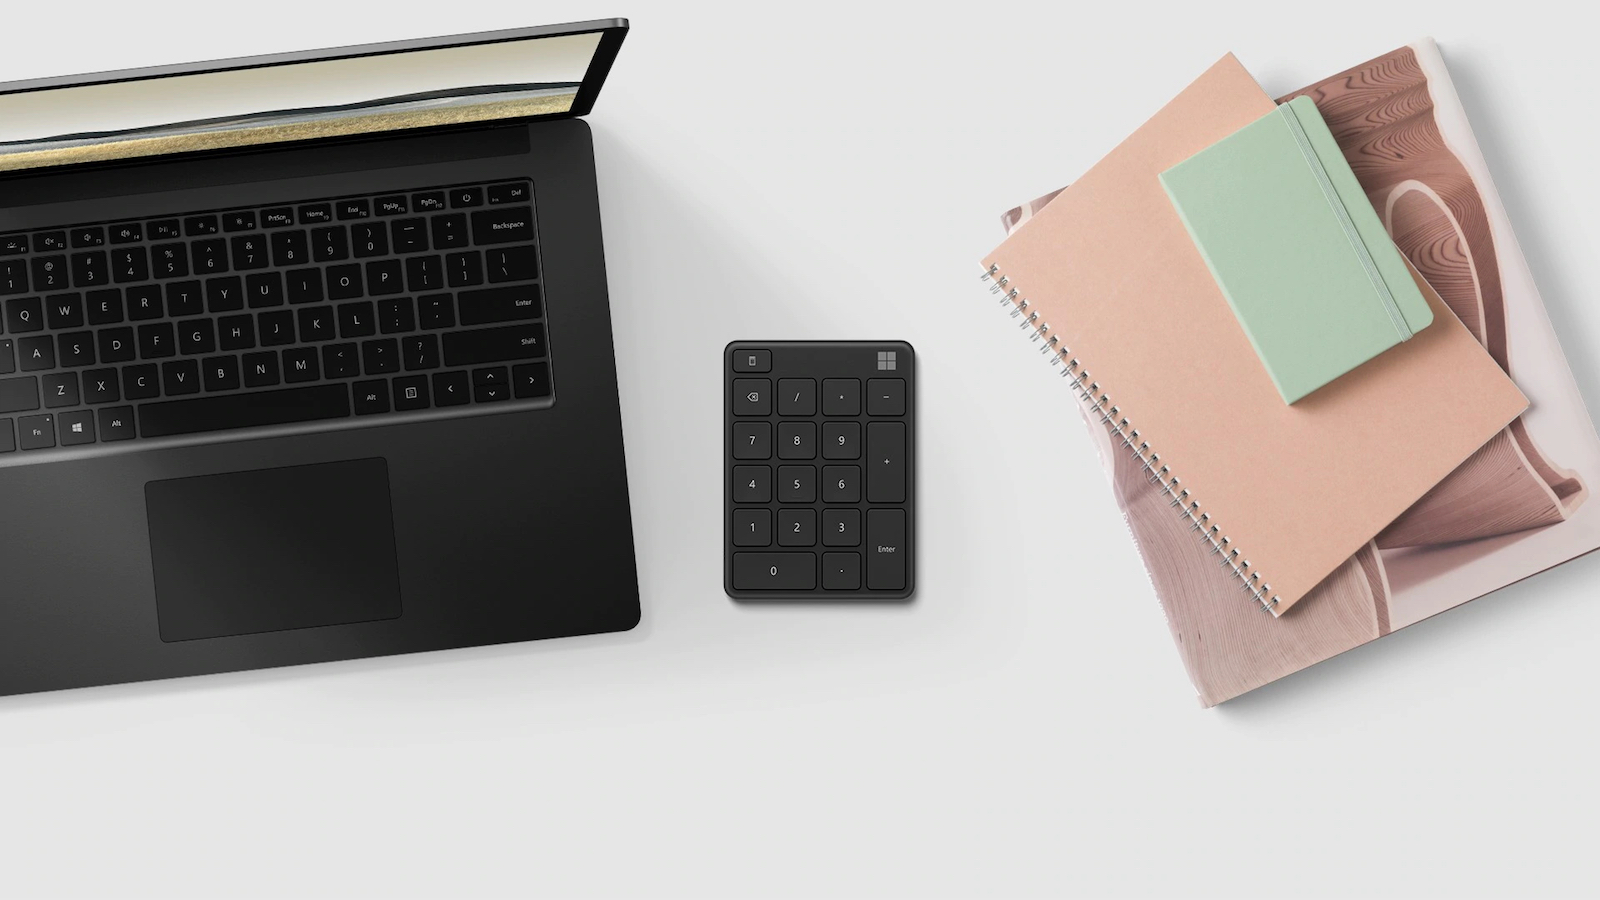 Microsoft Number Pad keyboard accessory allows you to type numbers faster